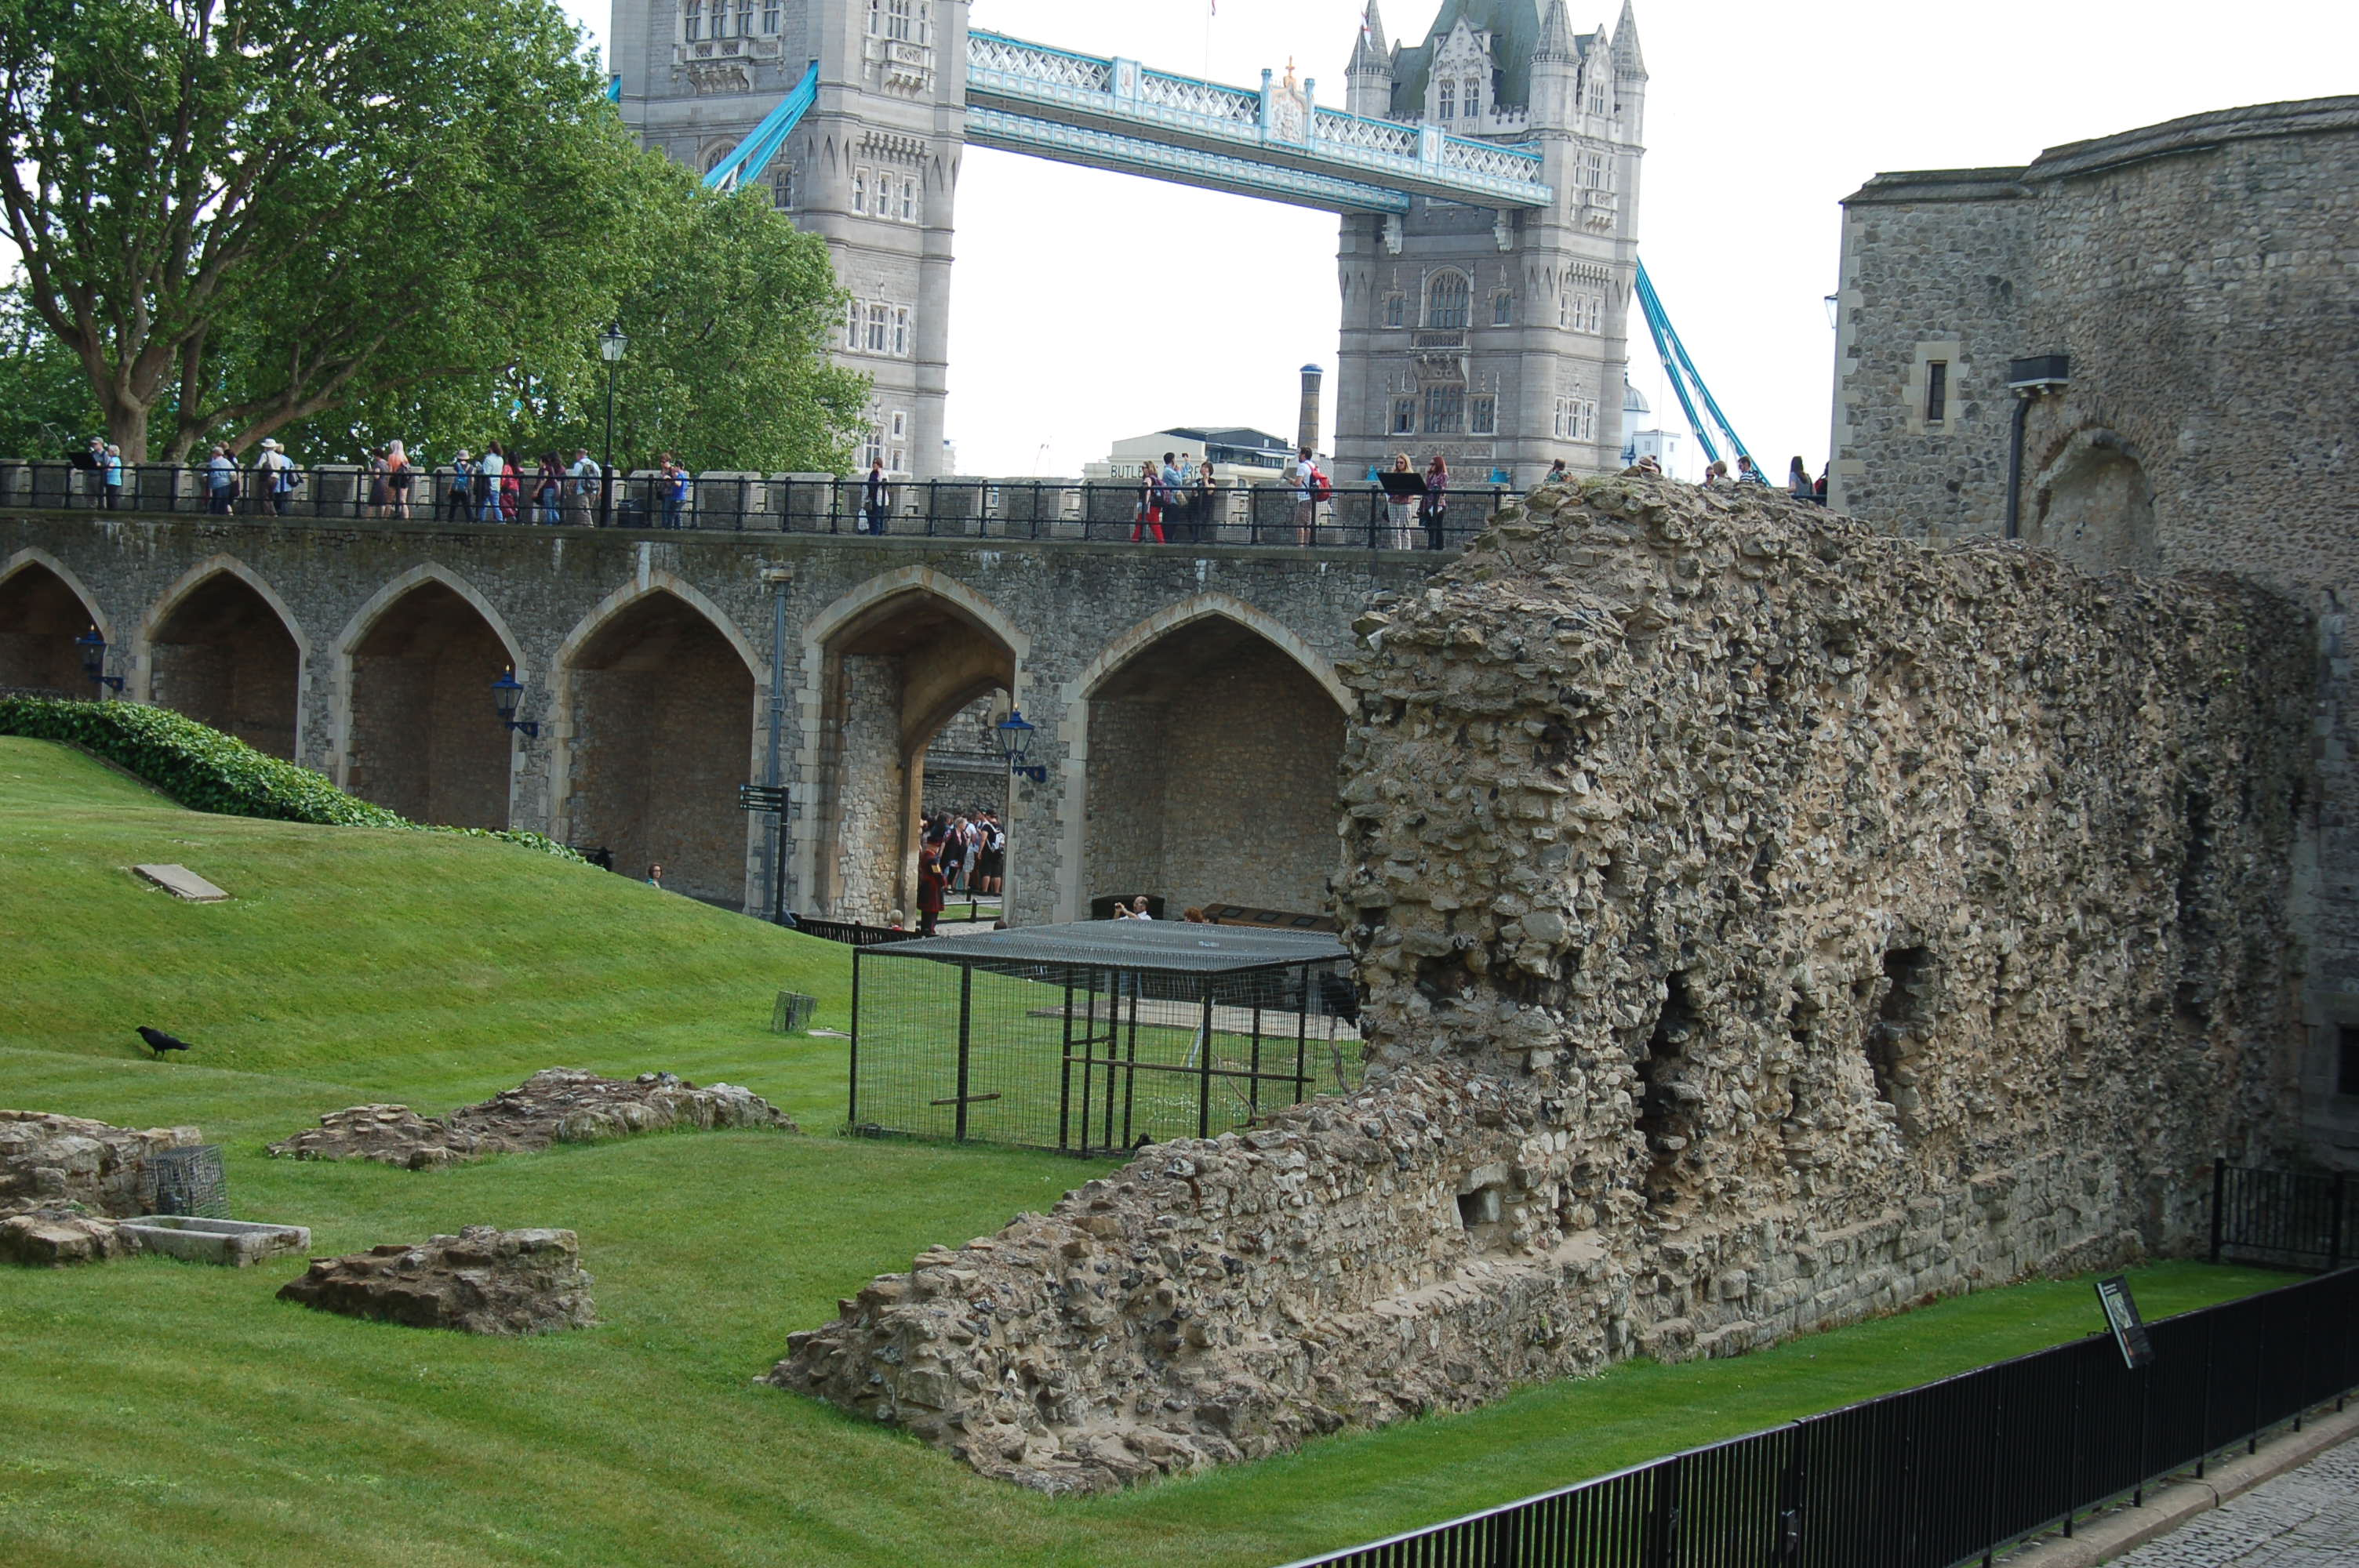 original Roman Wall of Tower of London with tower bridge in the background